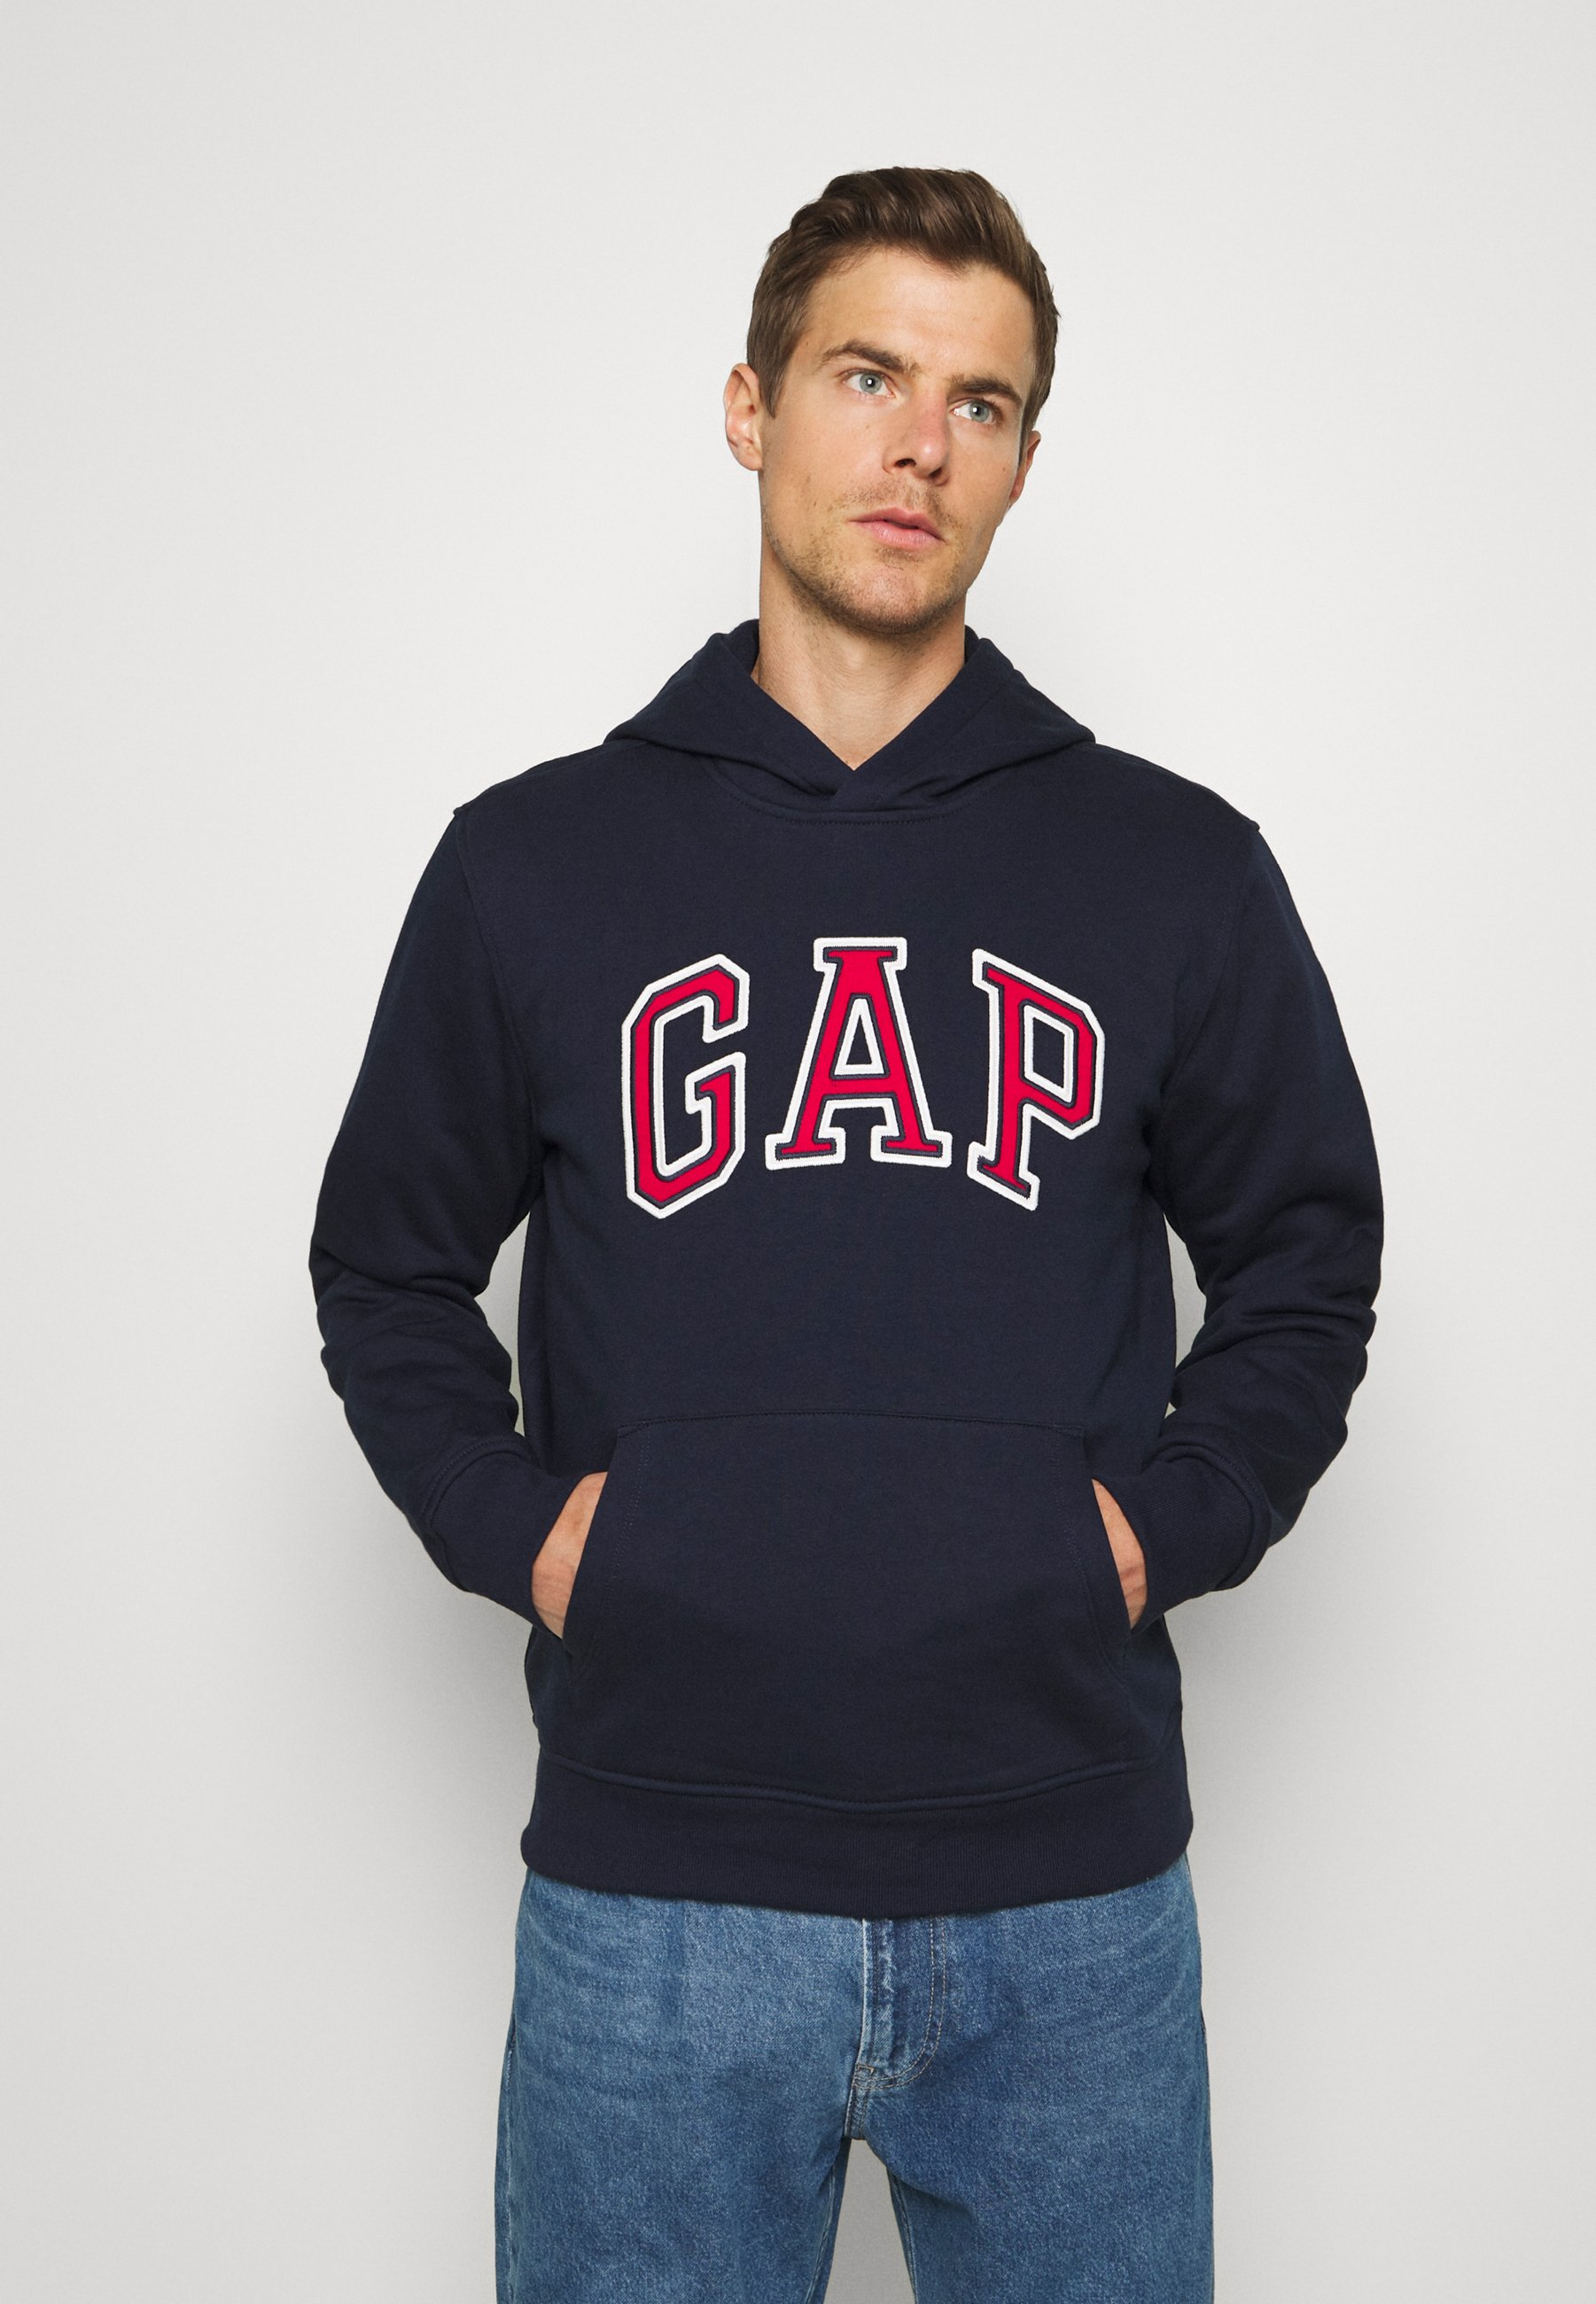 GAP V GAP ARCH Sweater whitewit Zalando.nl